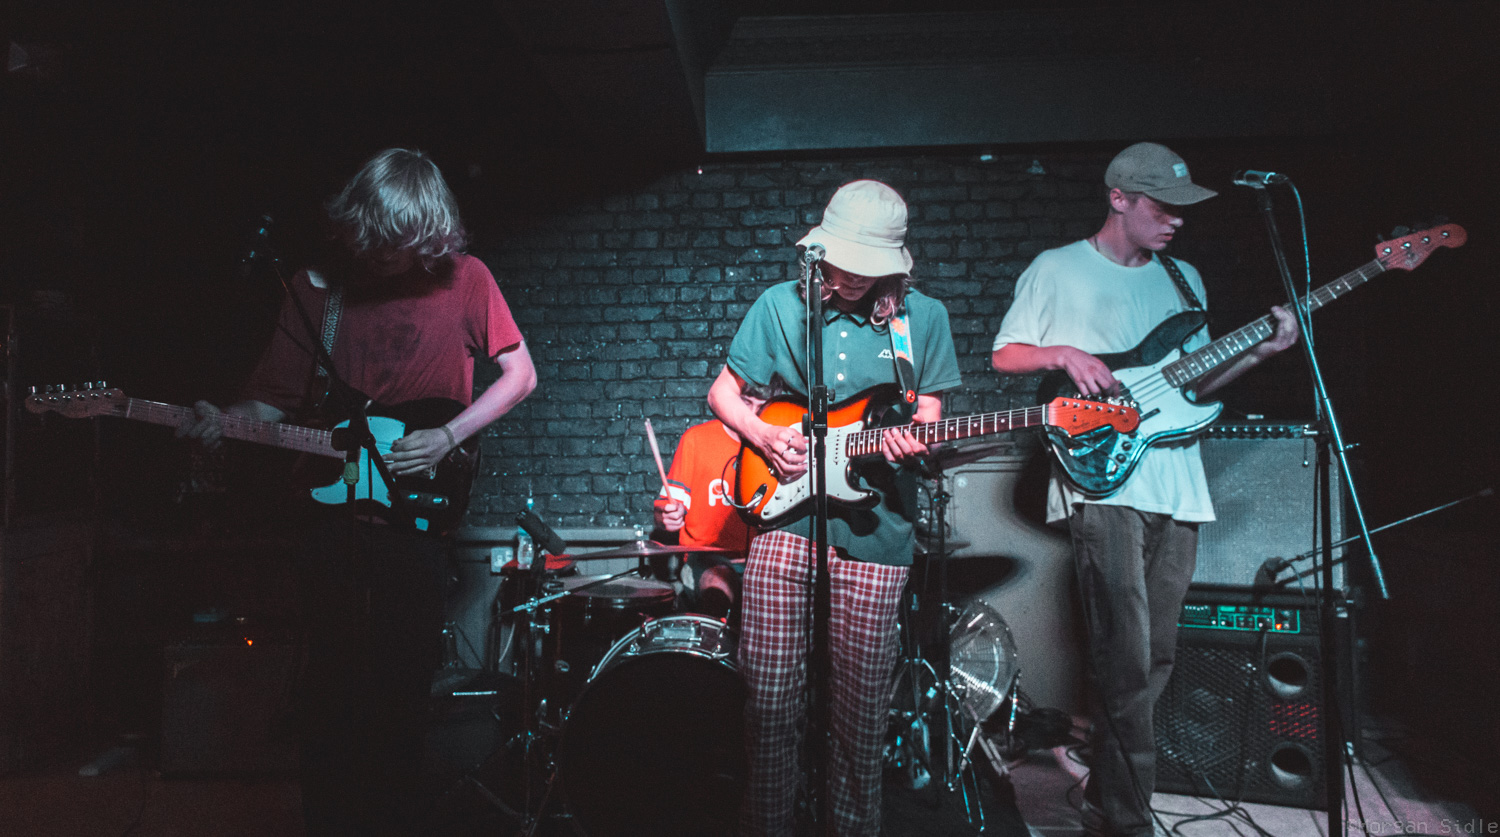 Bedroomhighclub at Cafe Totem for This Feeling/ Tramlines// 22-07-18